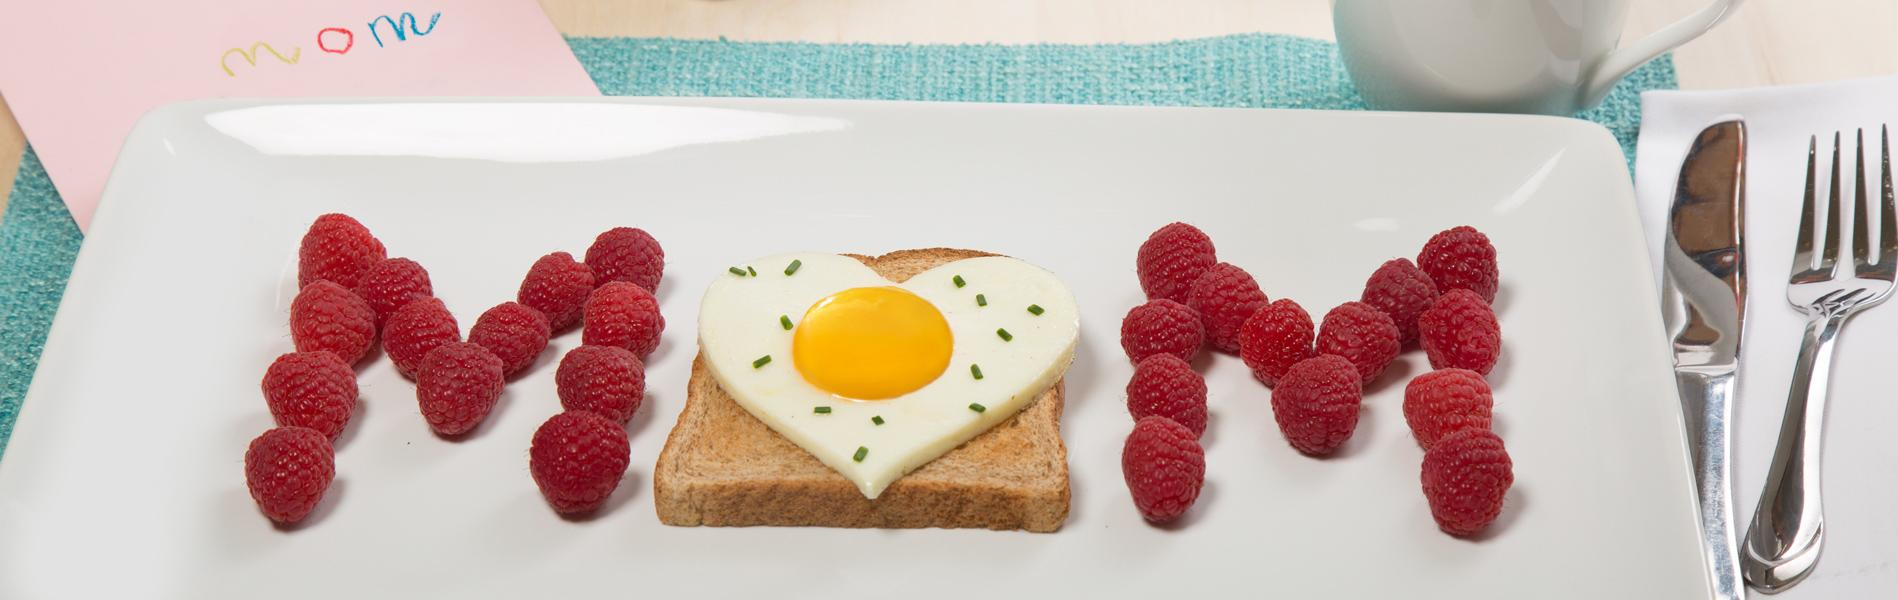 Heart shaped egg on toast with raspberries on the side